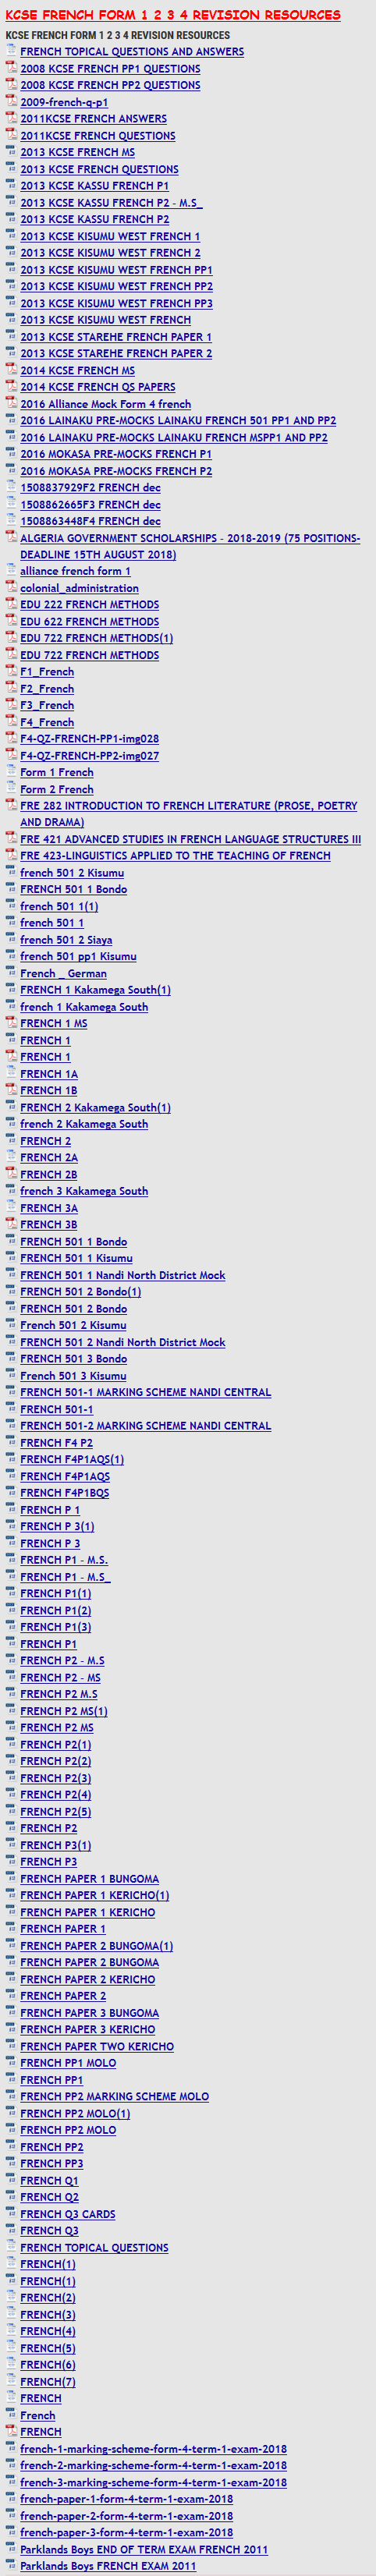 FREE KCSE FRENCH FORM 1 2 3 4 REVISION RESOURCES » KCSE REVISION